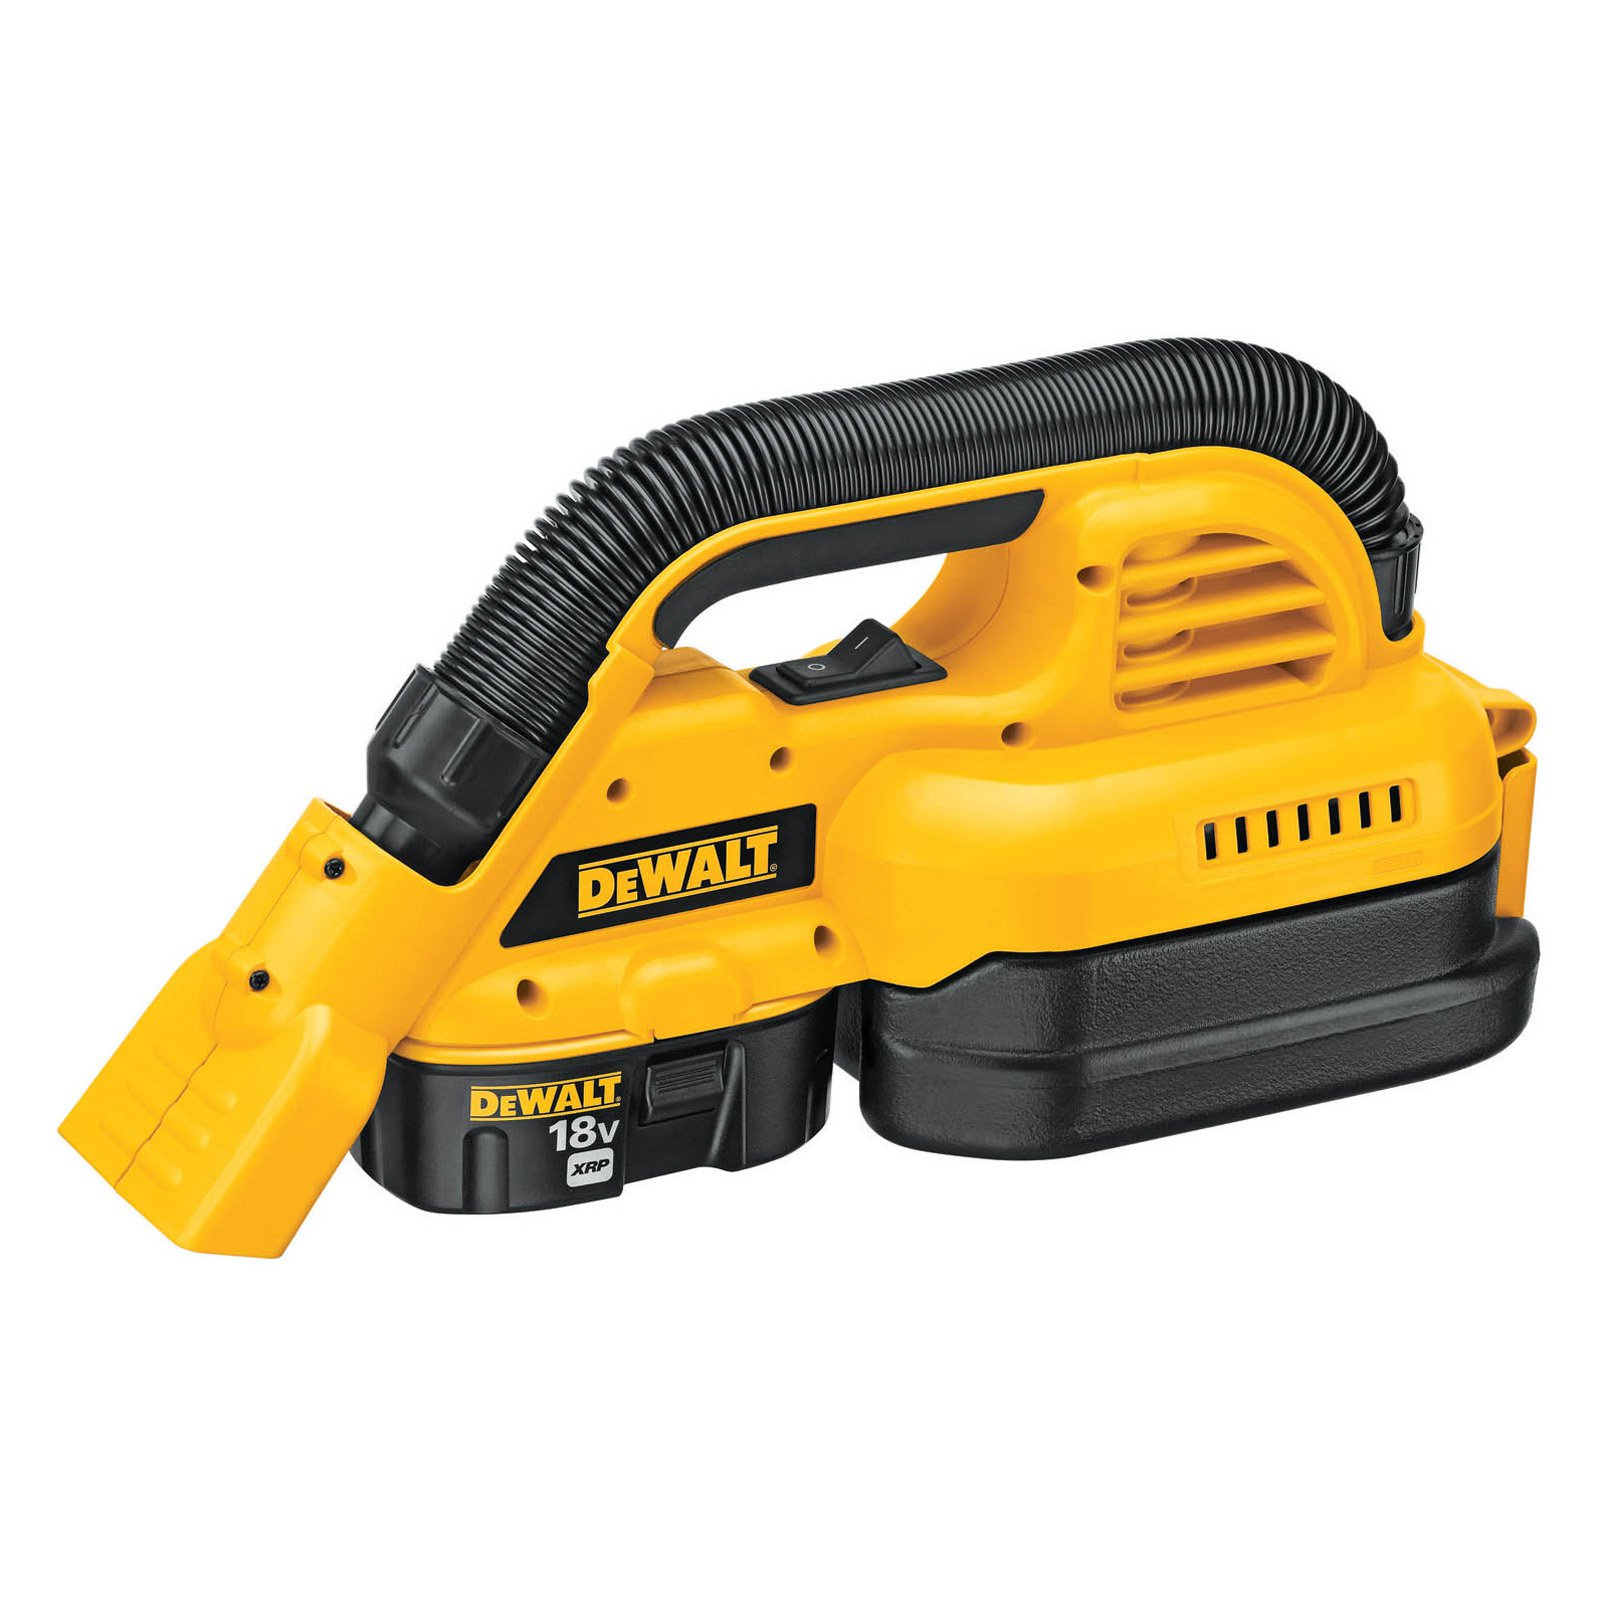 Dewalt Power Tools 1/2 gal. Heavy Duty Wet/Dry Portable V...